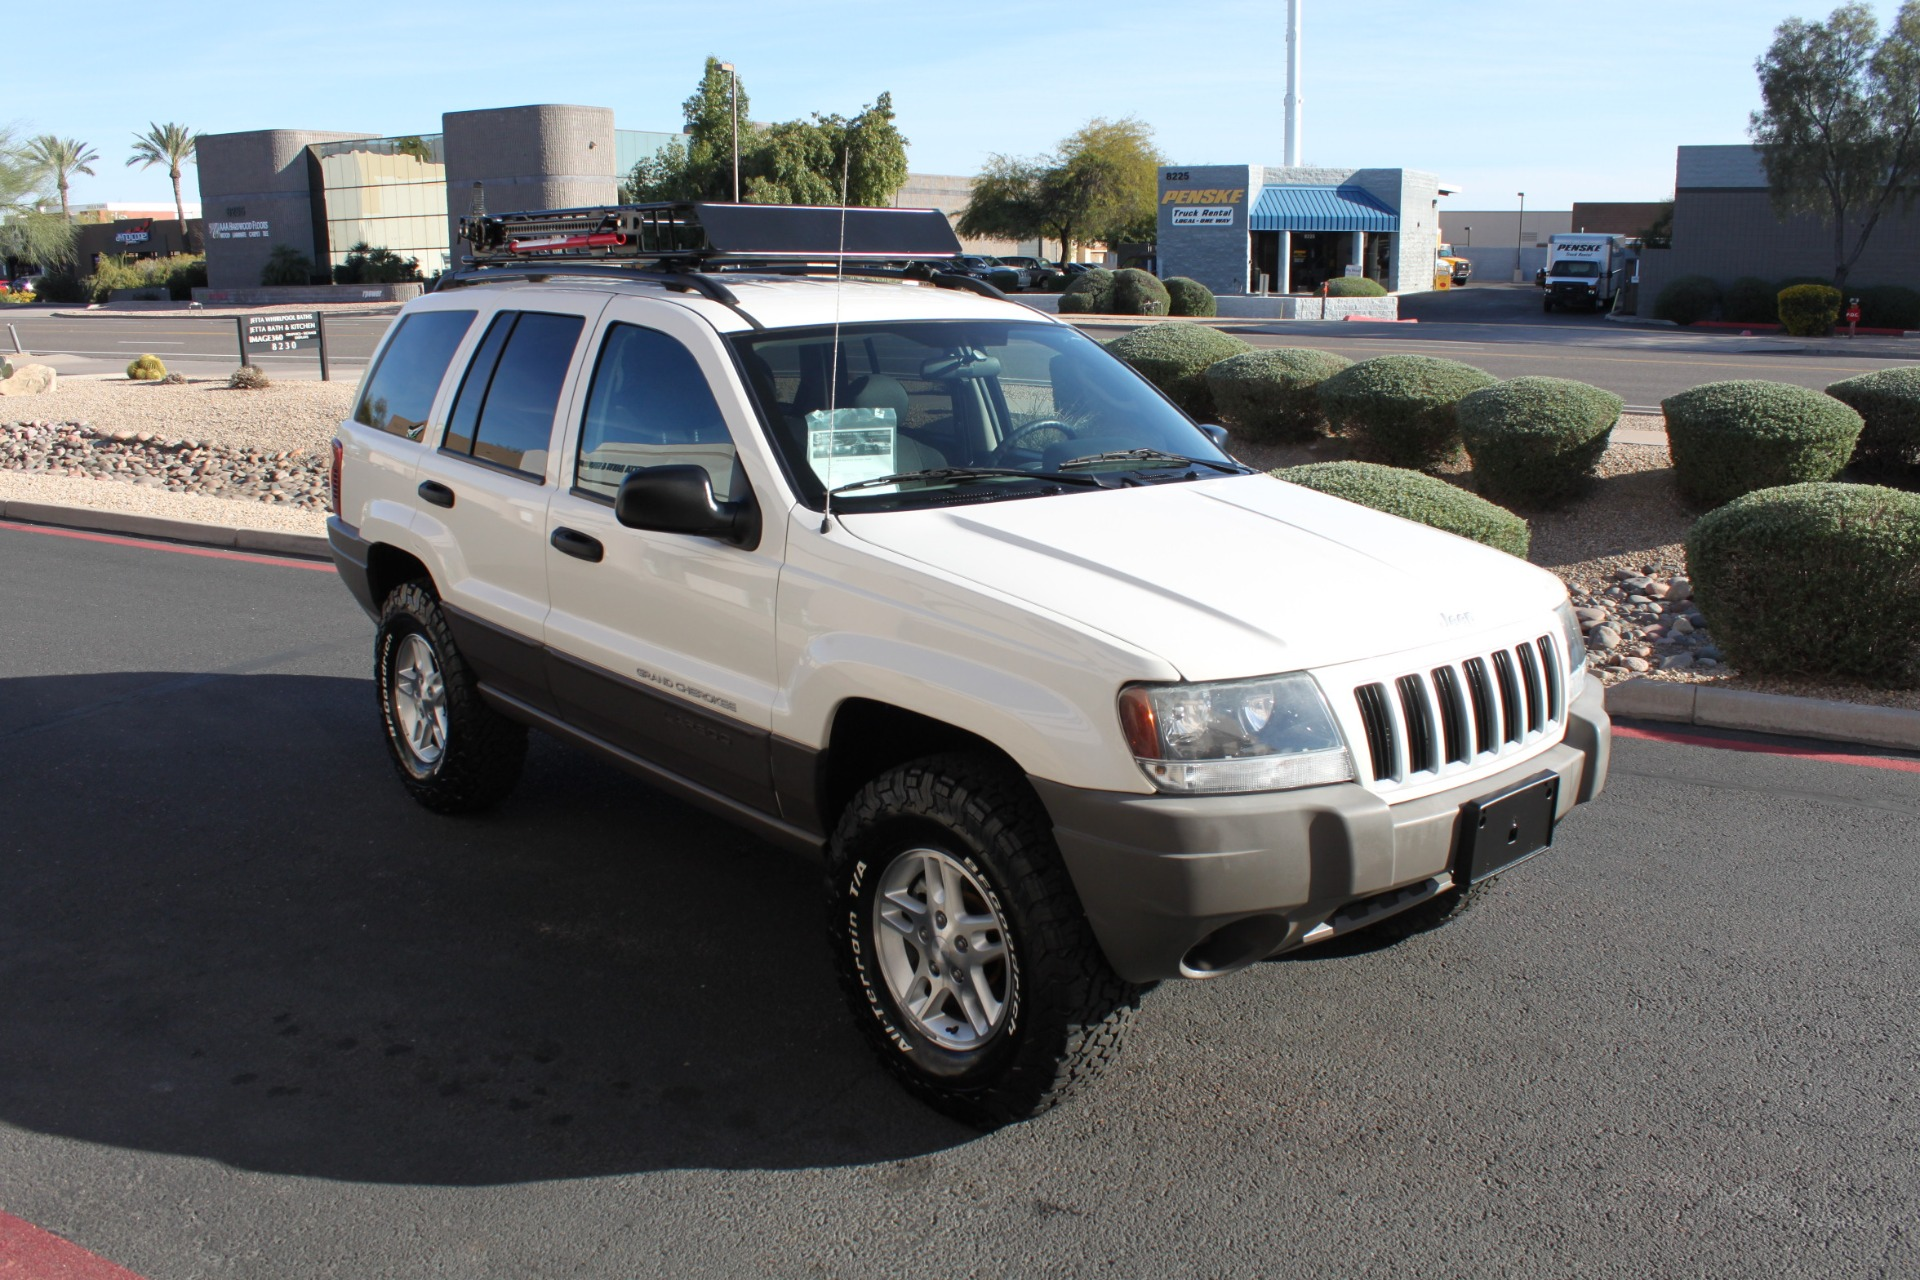 Used-2004-Jeep-Grand-Cherokee-Laredo-Chevelle